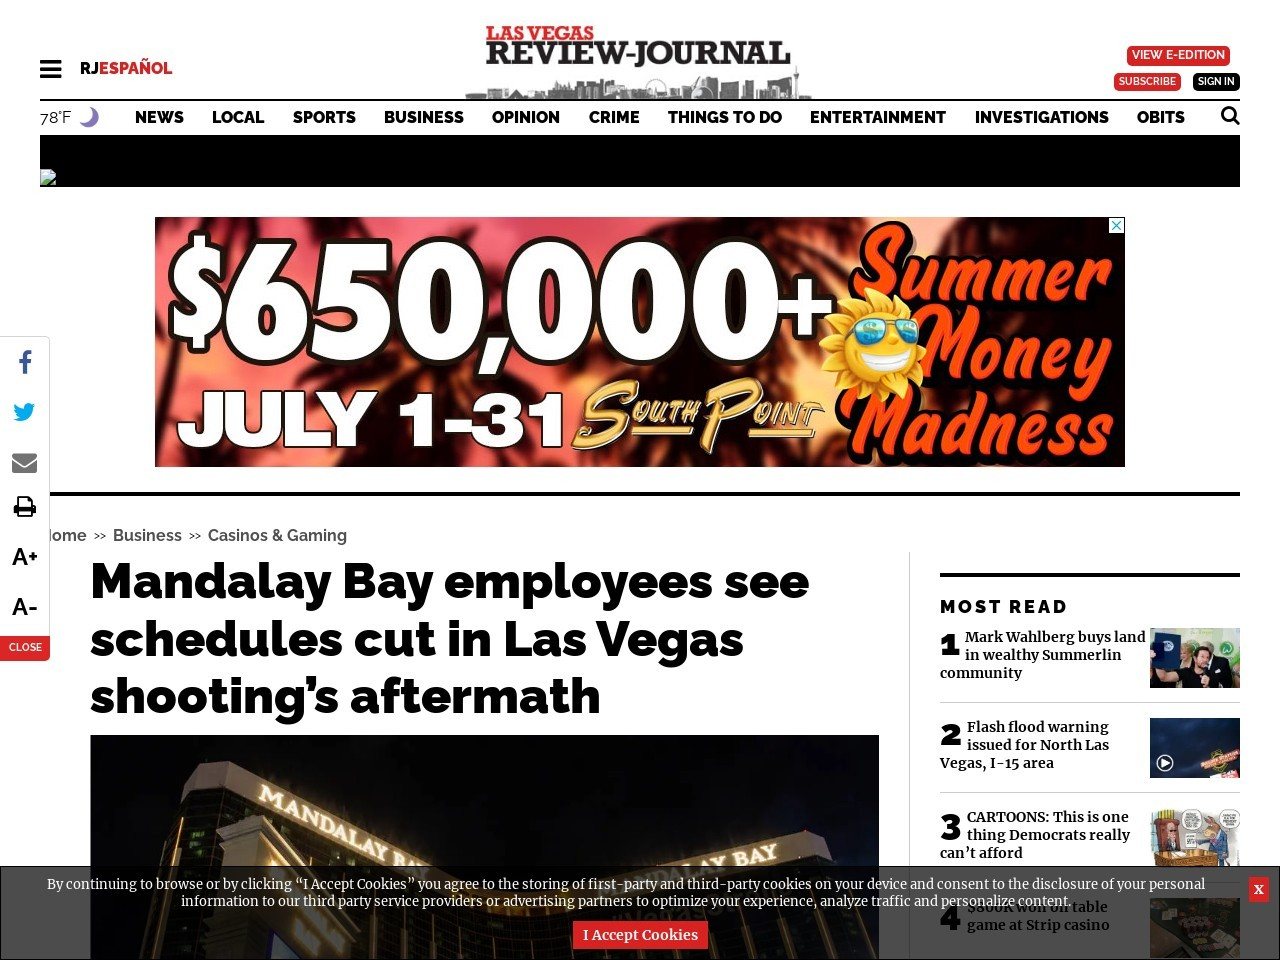 Mandalay Bay employees see schedules cut in Las Vegas shooting's aftermath